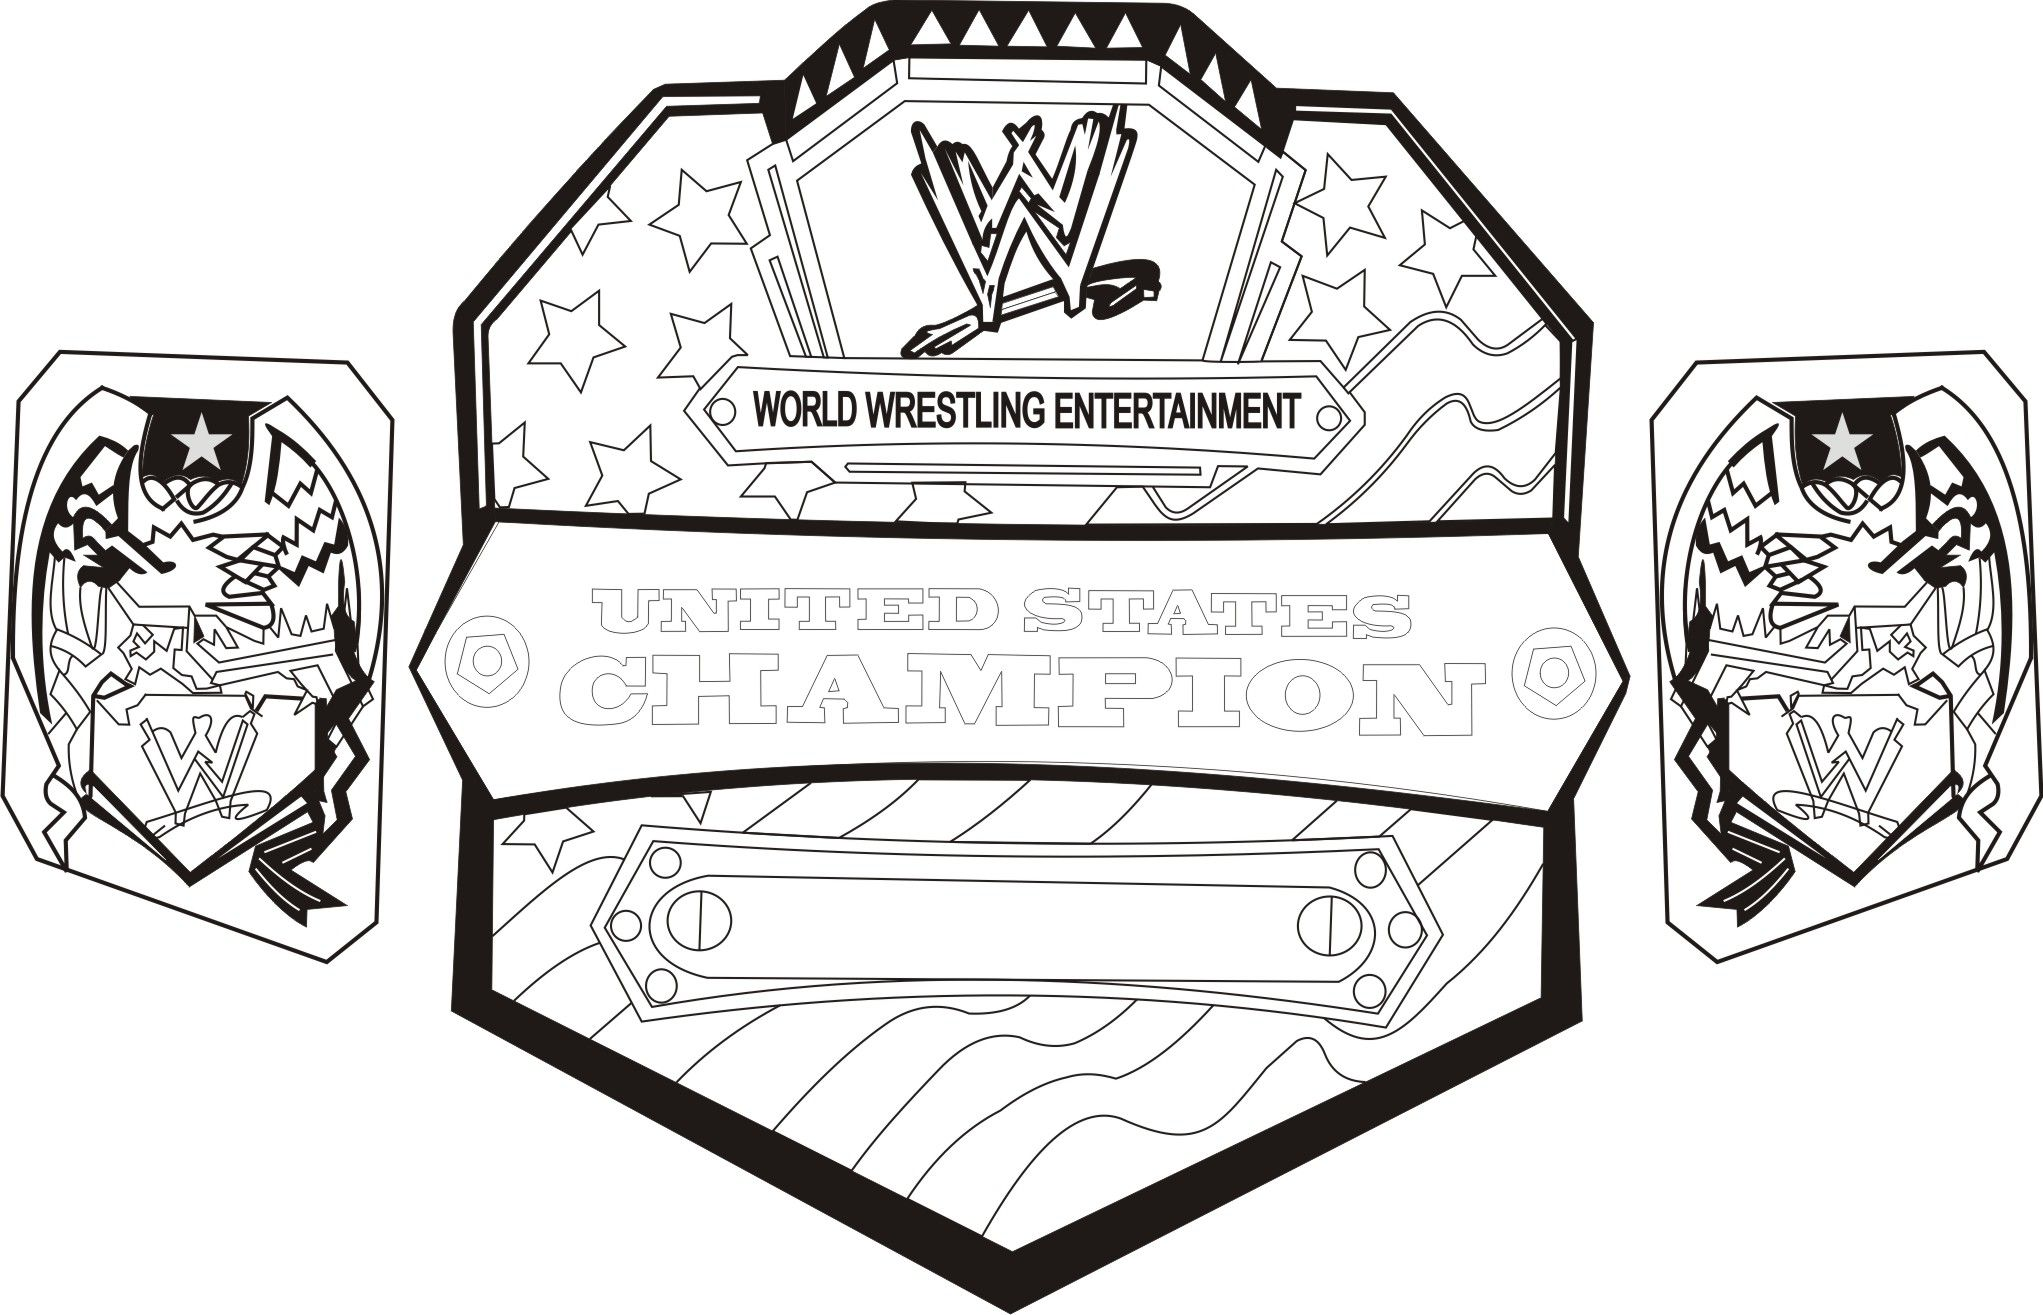 Coloring Pages Free Wwe Coloring Pages wwe coloring pages 2015 az 17 pictures colorine net 26711